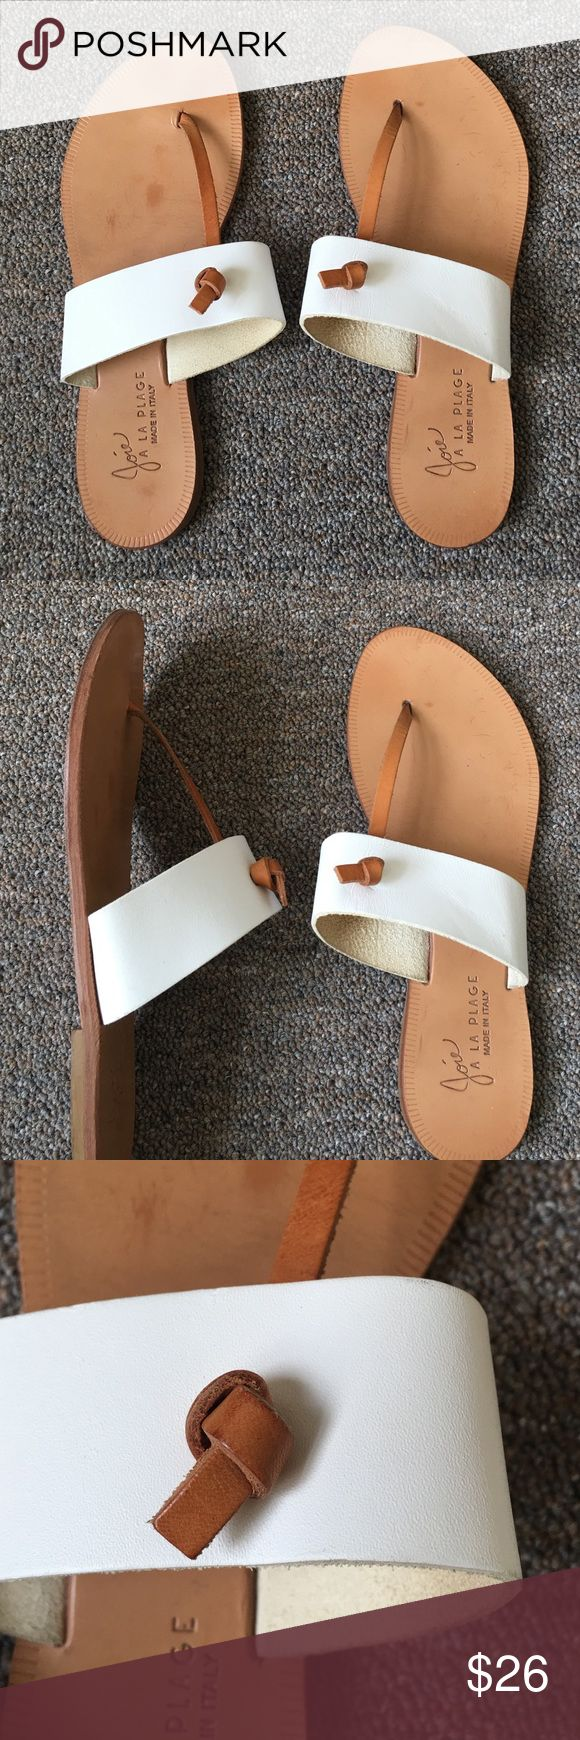 Joie leather sandals Comfortable T-strap sandals, a bit worn but you won't see the markings on the soles when you are wearing them! Joie Shoes Sandals